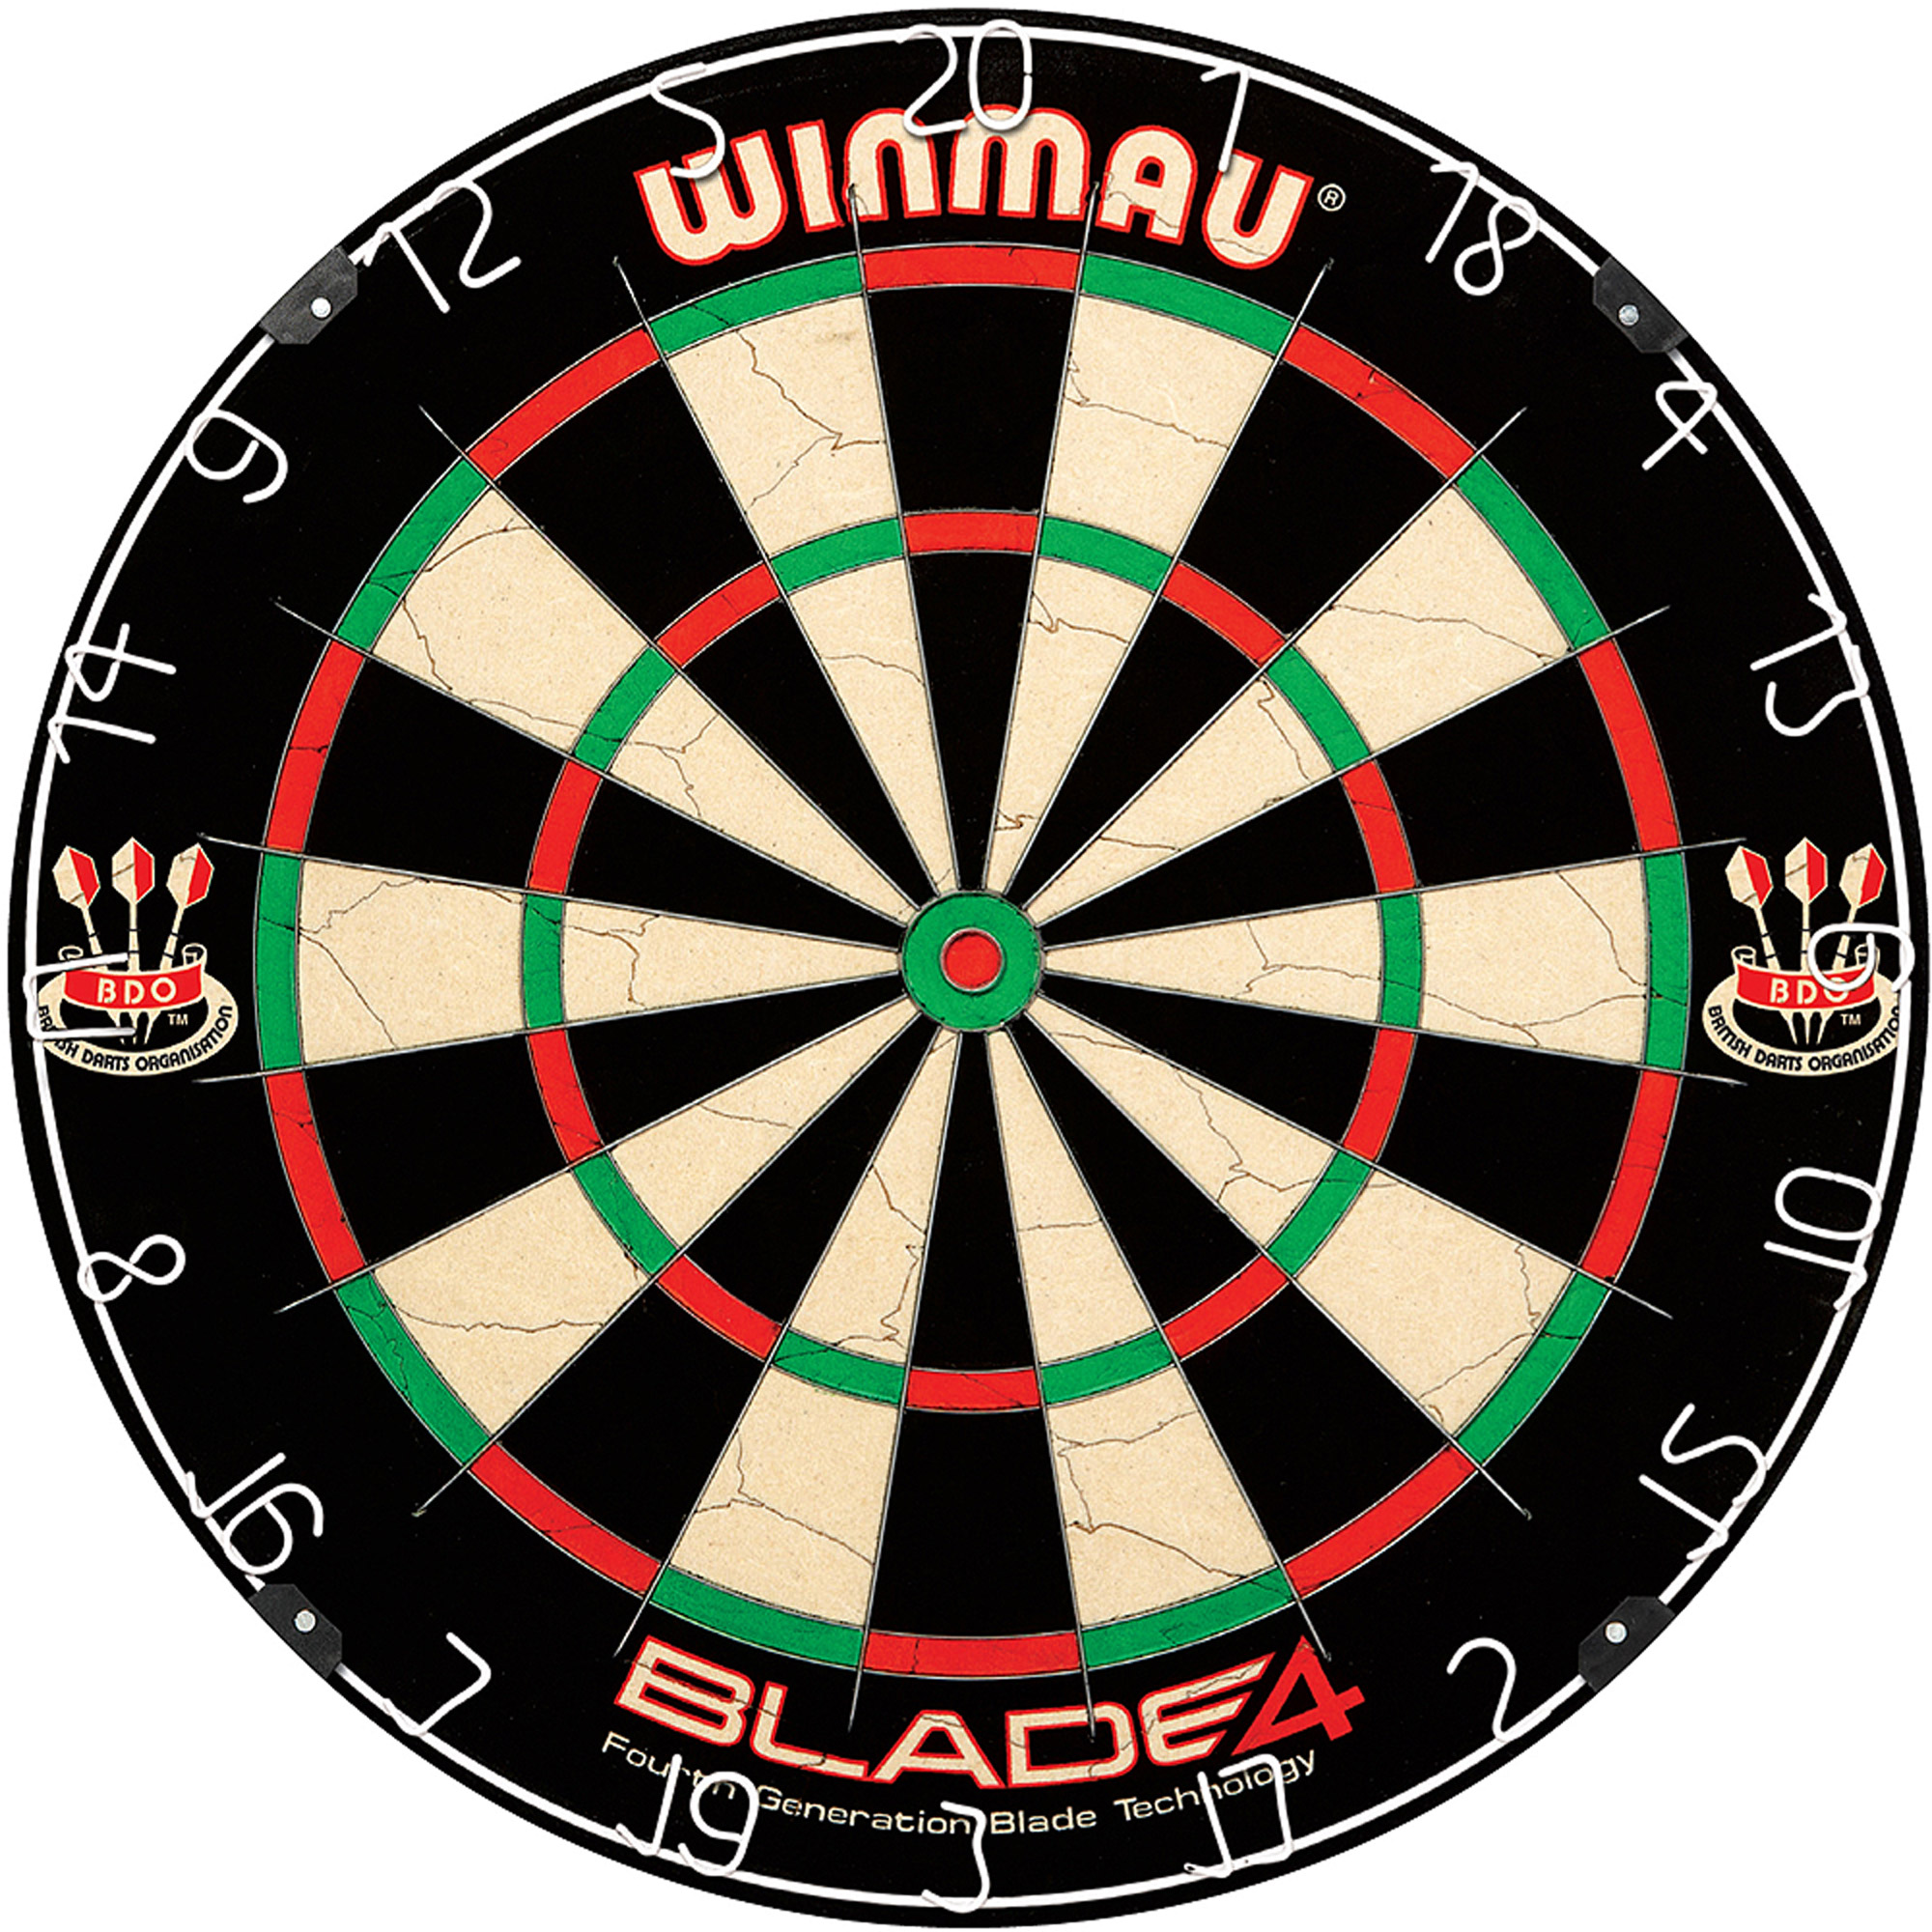 Winmau Blade 4 Bristle Dartboard by Escalade